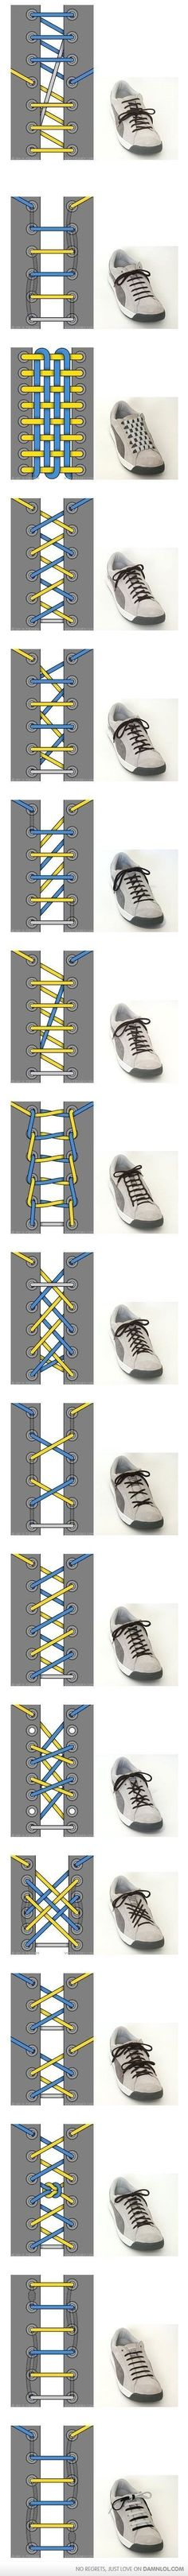 Shoe lace patterns - so cool!